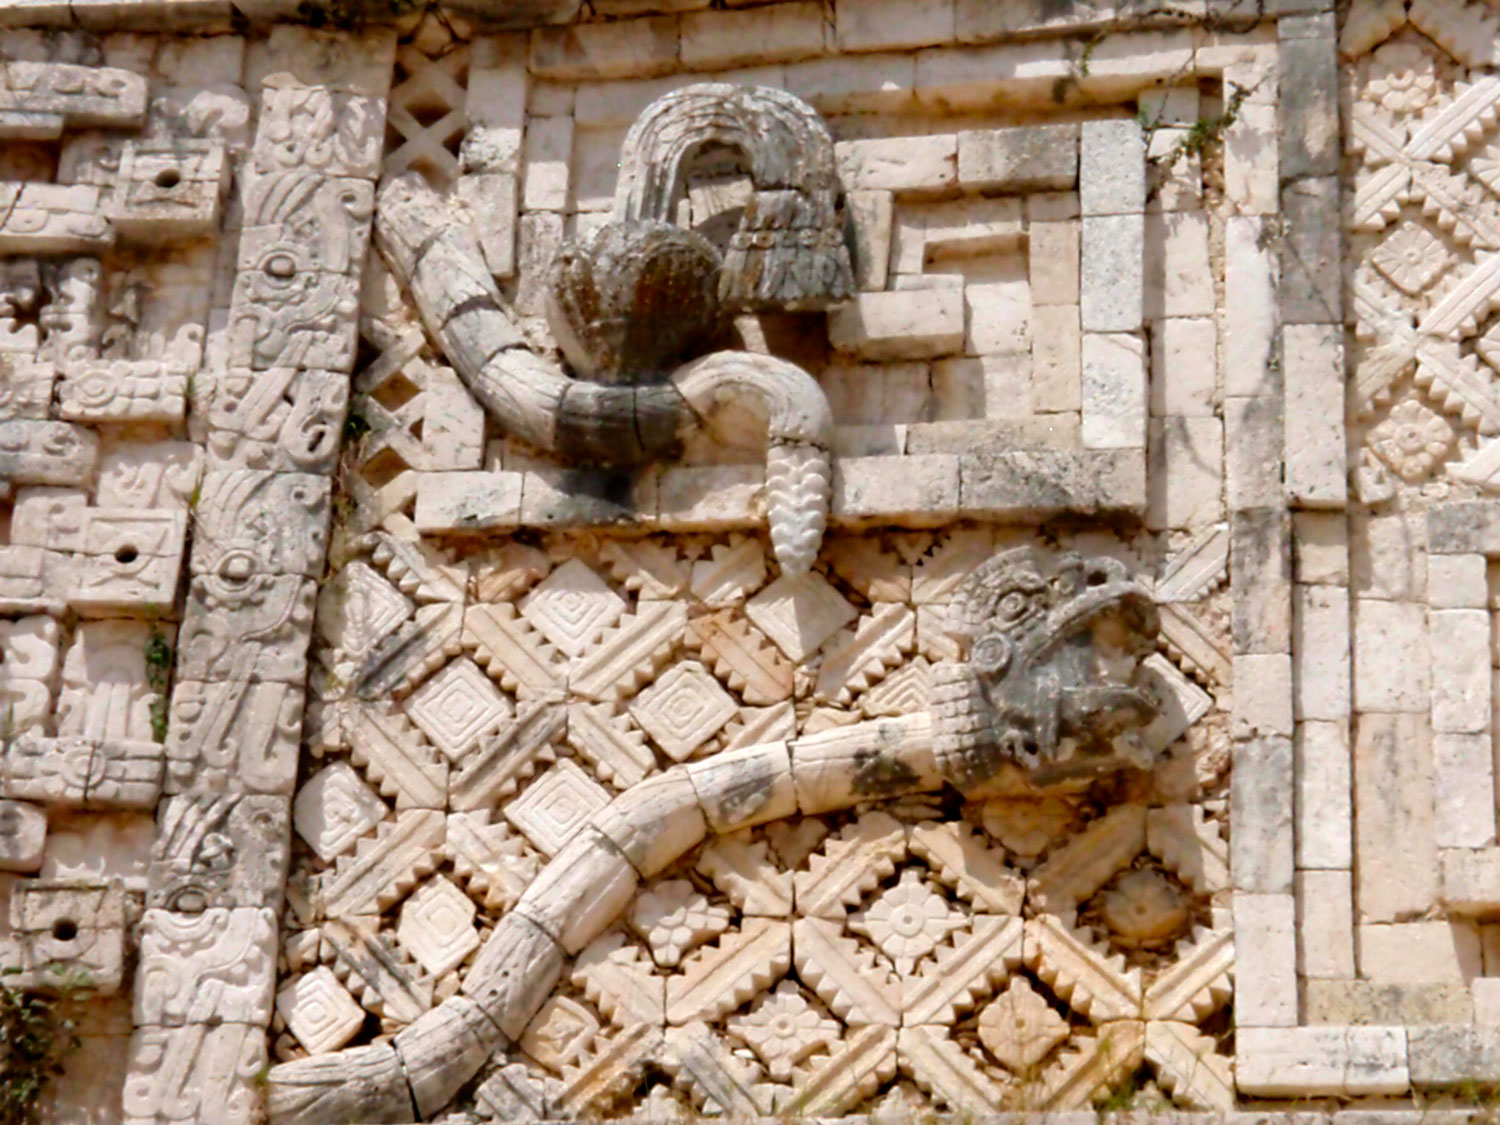 Serpents on the Nunnery building at Uxmal,among the sculptures of a god, a king and a priest; a conduit for their passing to the heavens.